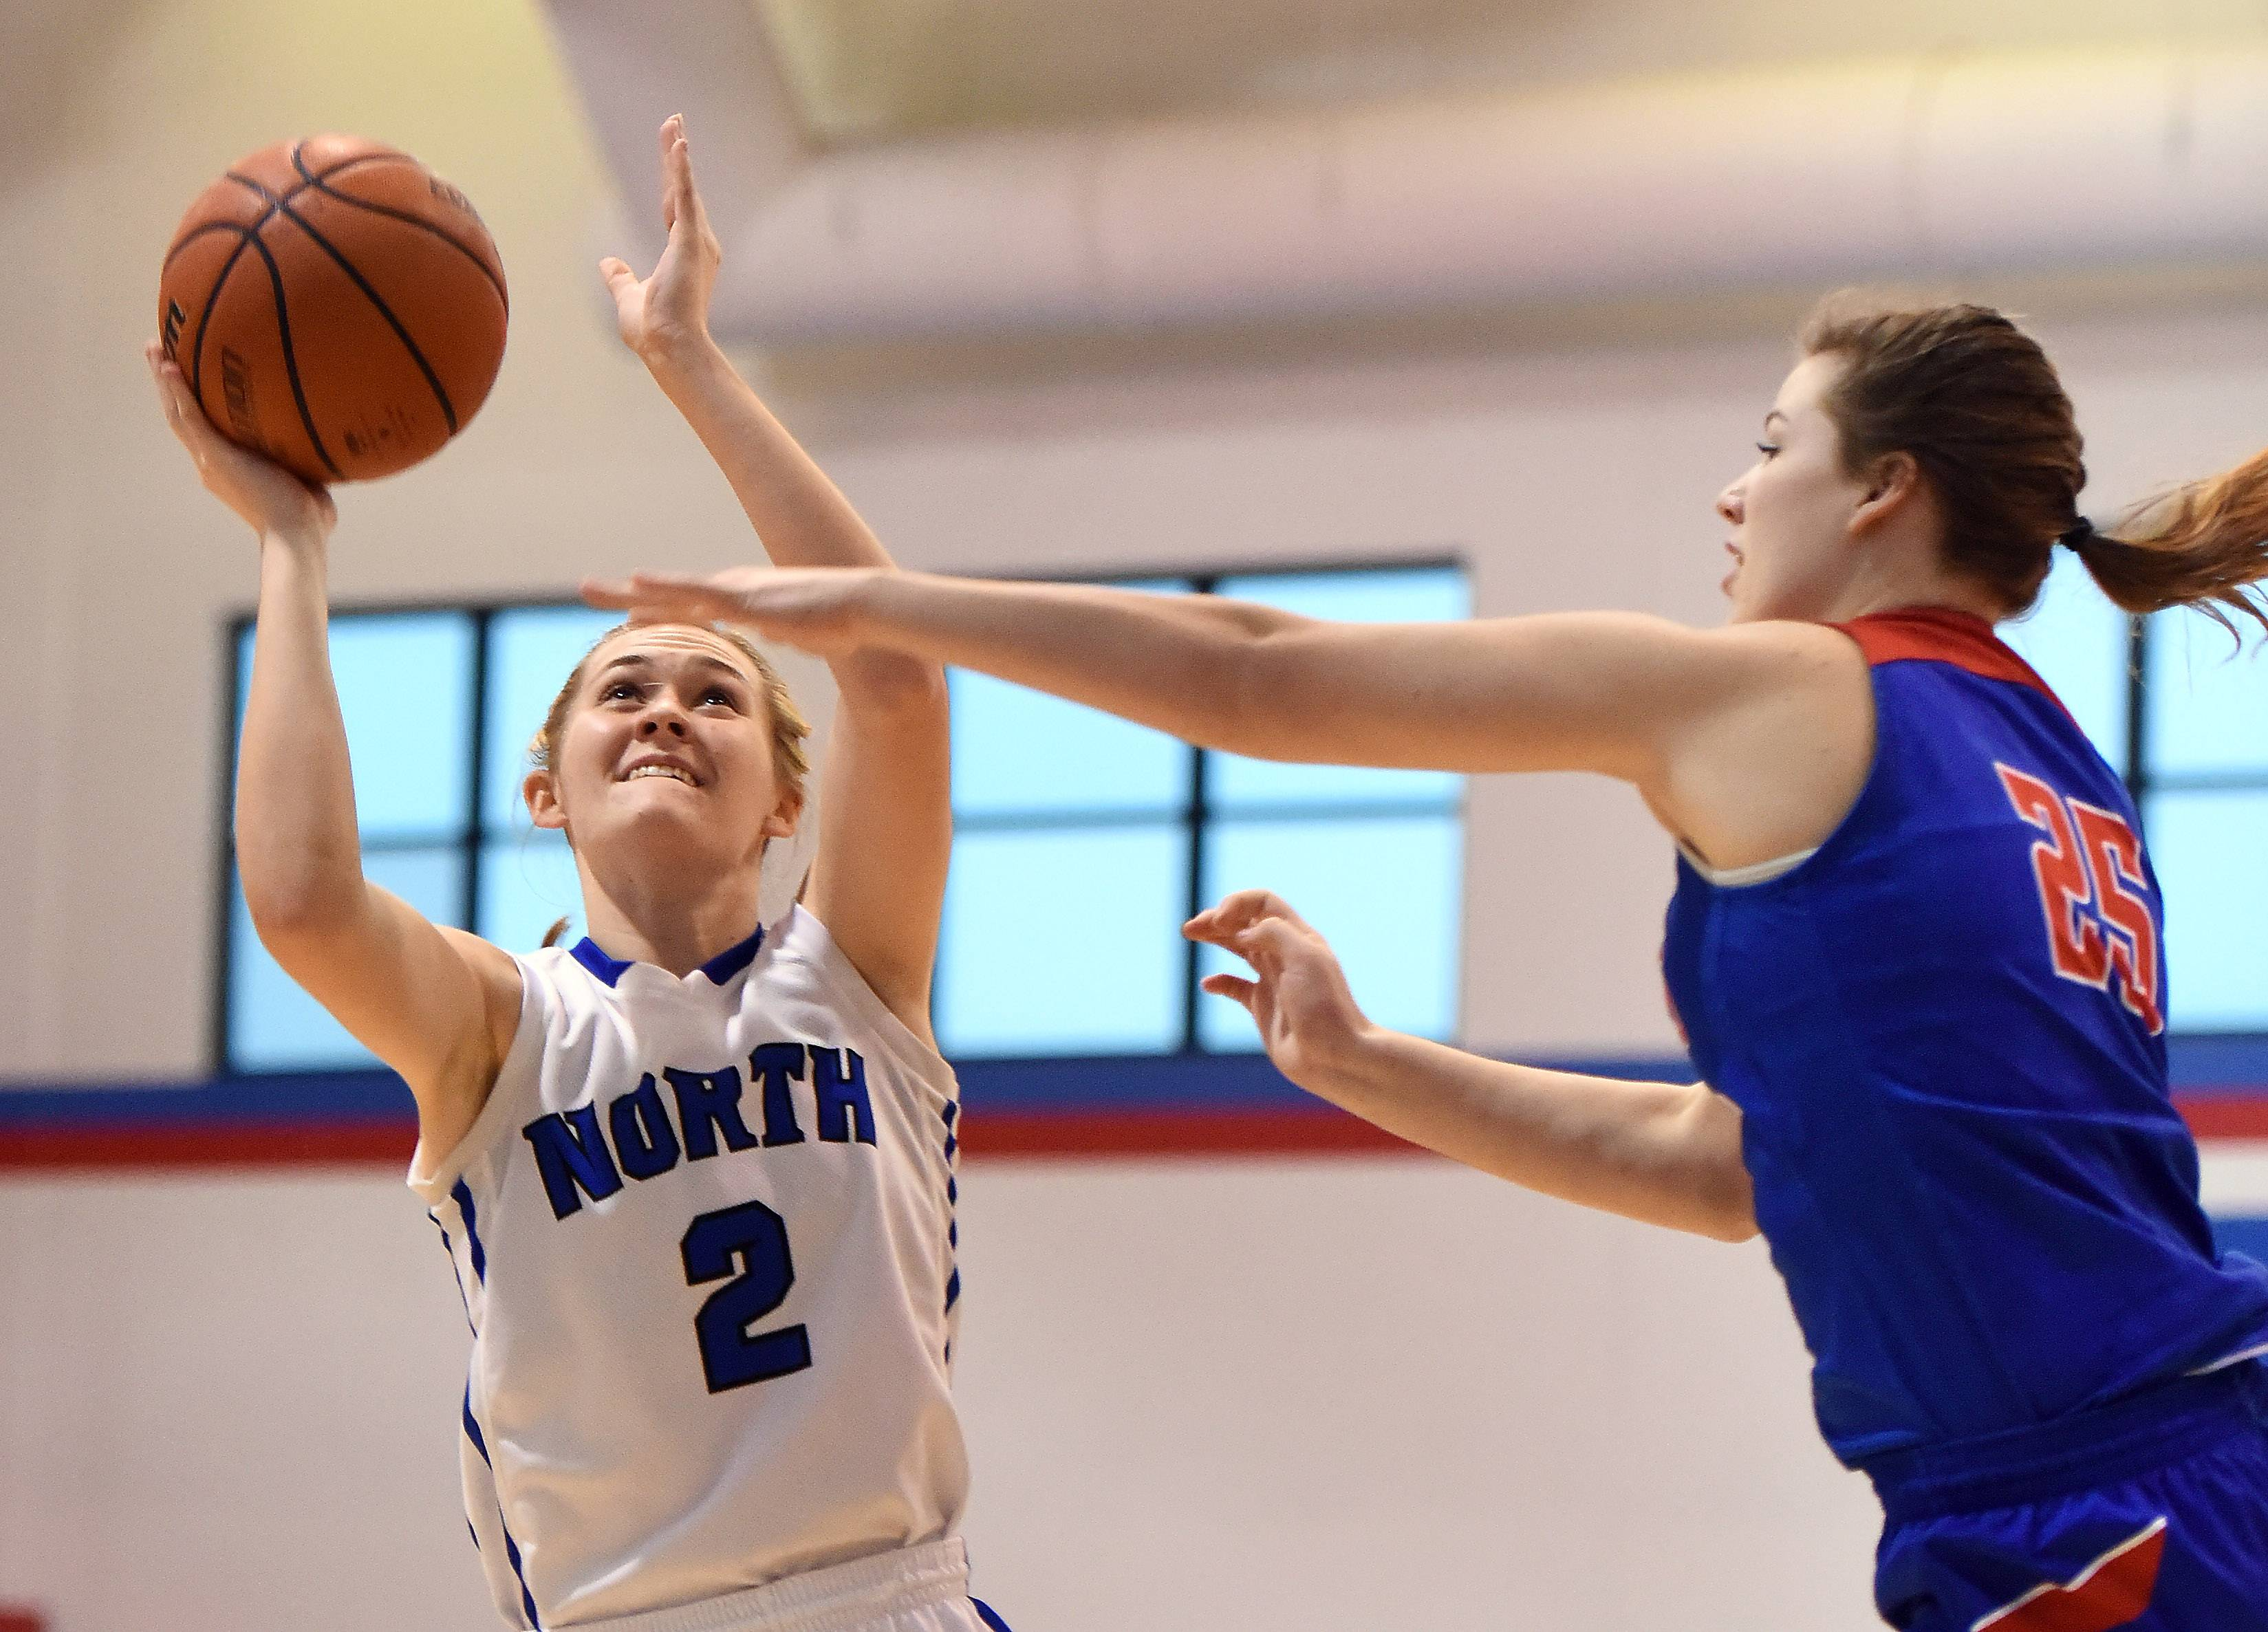 St. Charles North's Anna Davern puts up a shot with Dundee-Crown's Allison Michalski defending during the consolation finals at the 34th annual Charger Classic basketball tournament in Carpentersville Thursday.